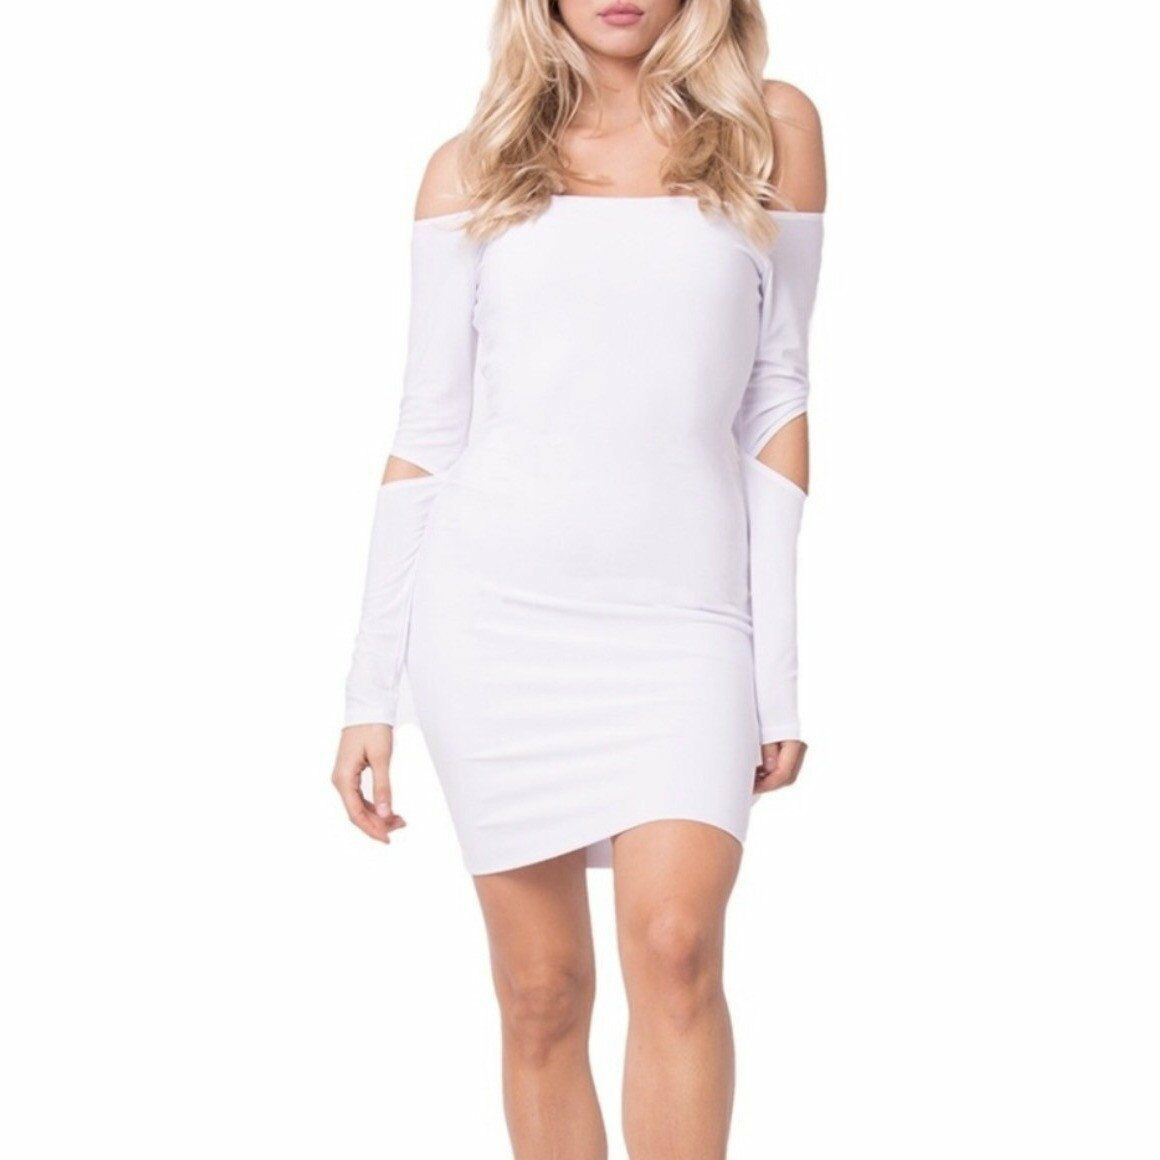 The Ky Mini Dress White